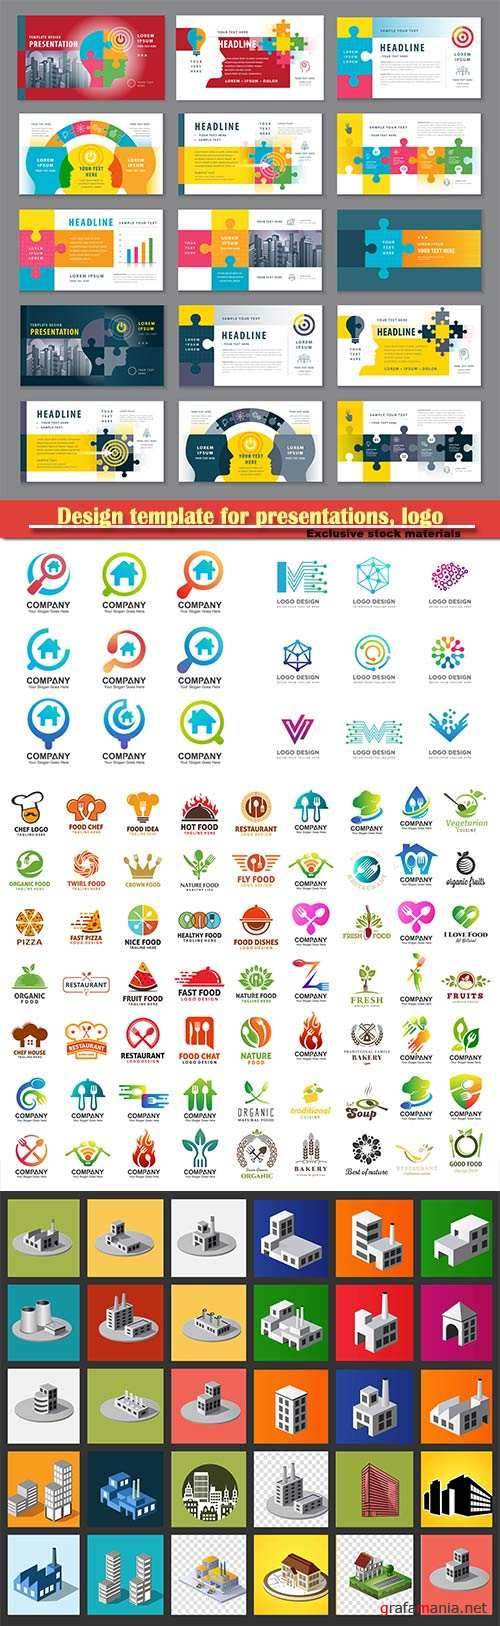 Design template for presentations, logo icons and vector isometry